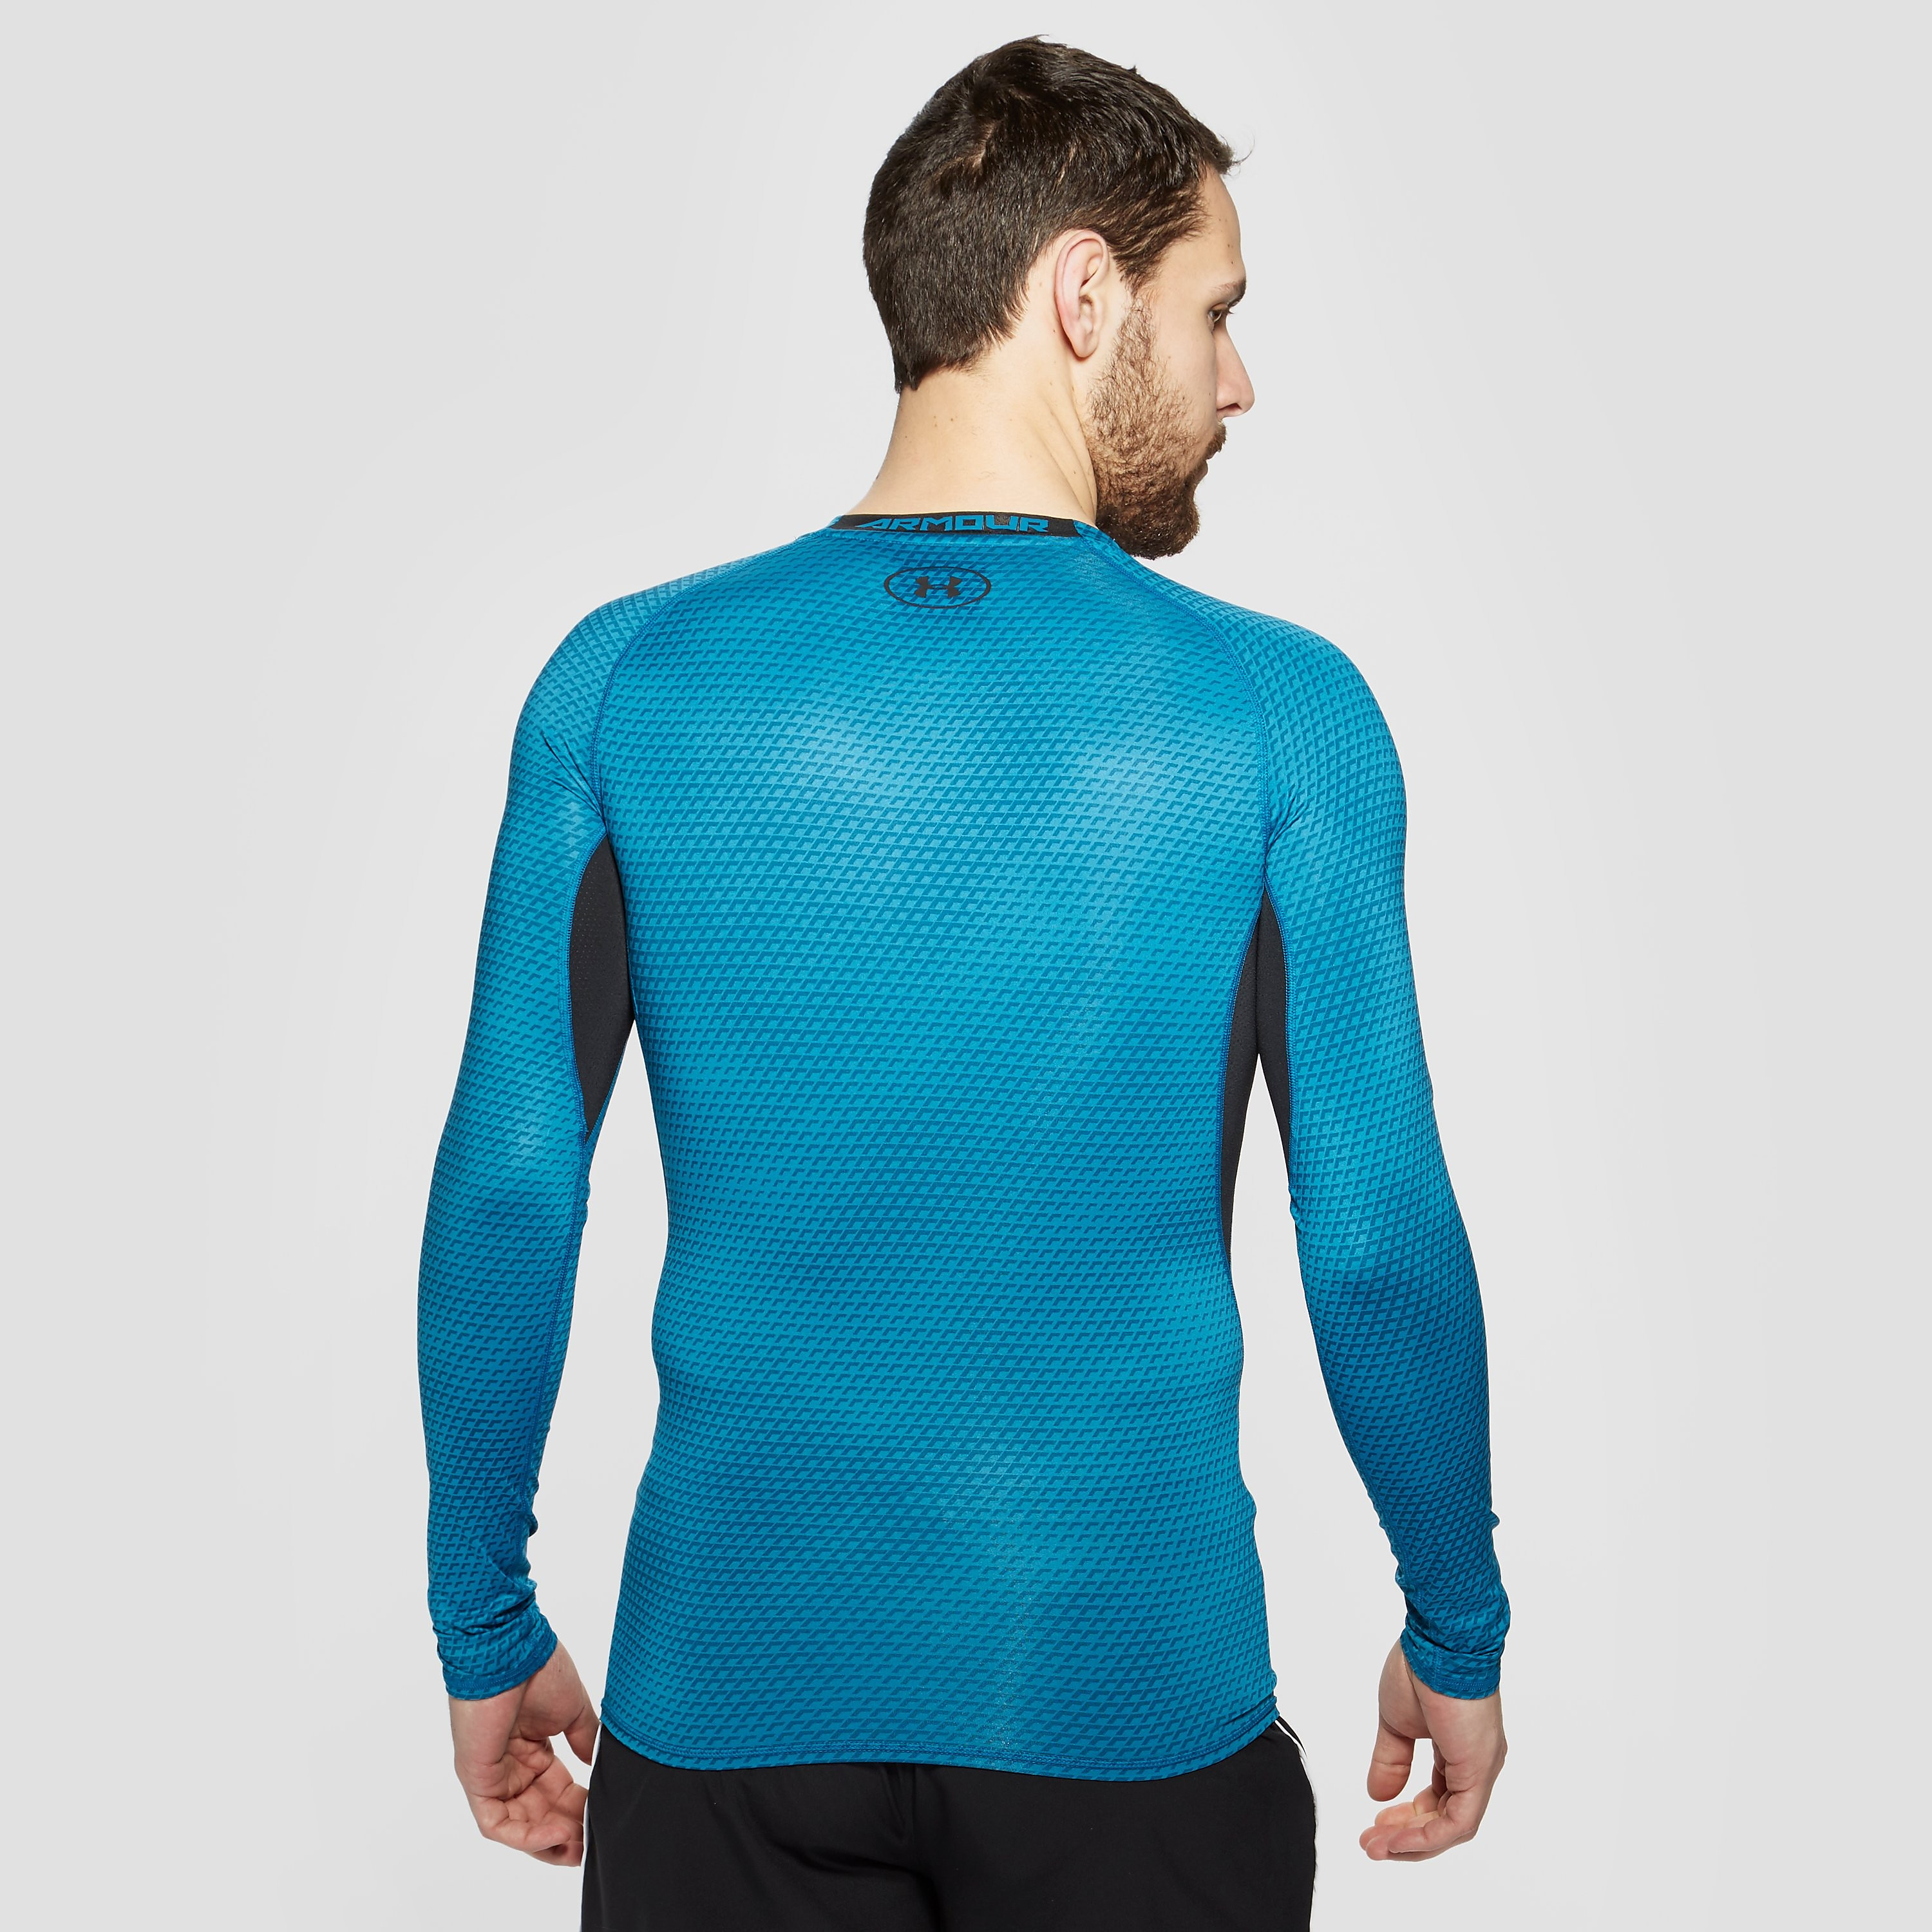 Under Armour HeatGear Armour Long Sleeved Compression Men's Training Top